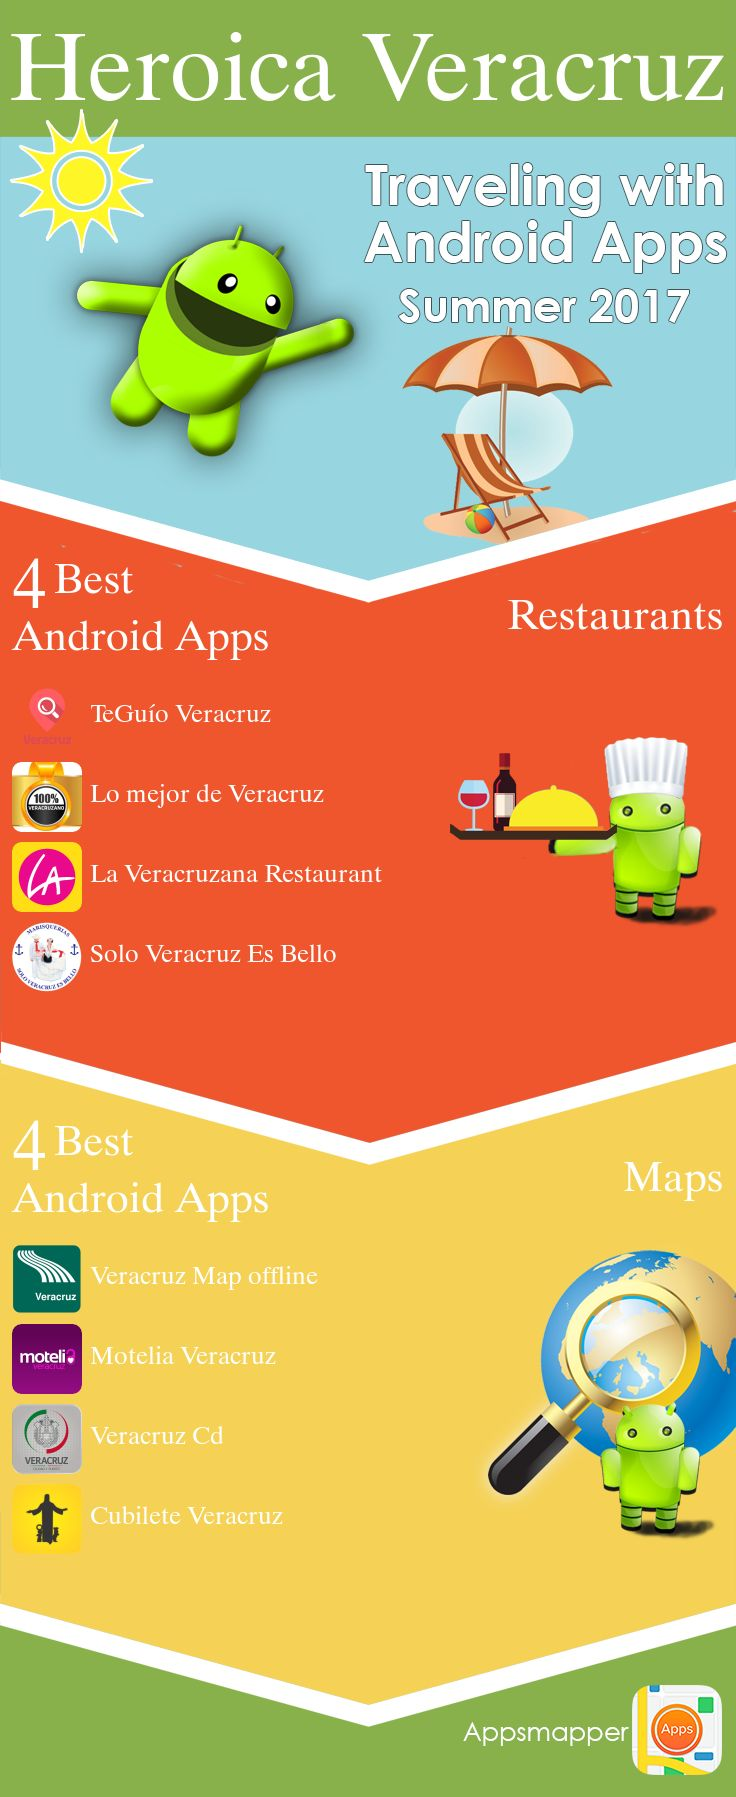 Heroica Veracruz Android apps: Travel Guides, Maps, Transportation, Biking, Museums, Parking, Sport and apps for Students.